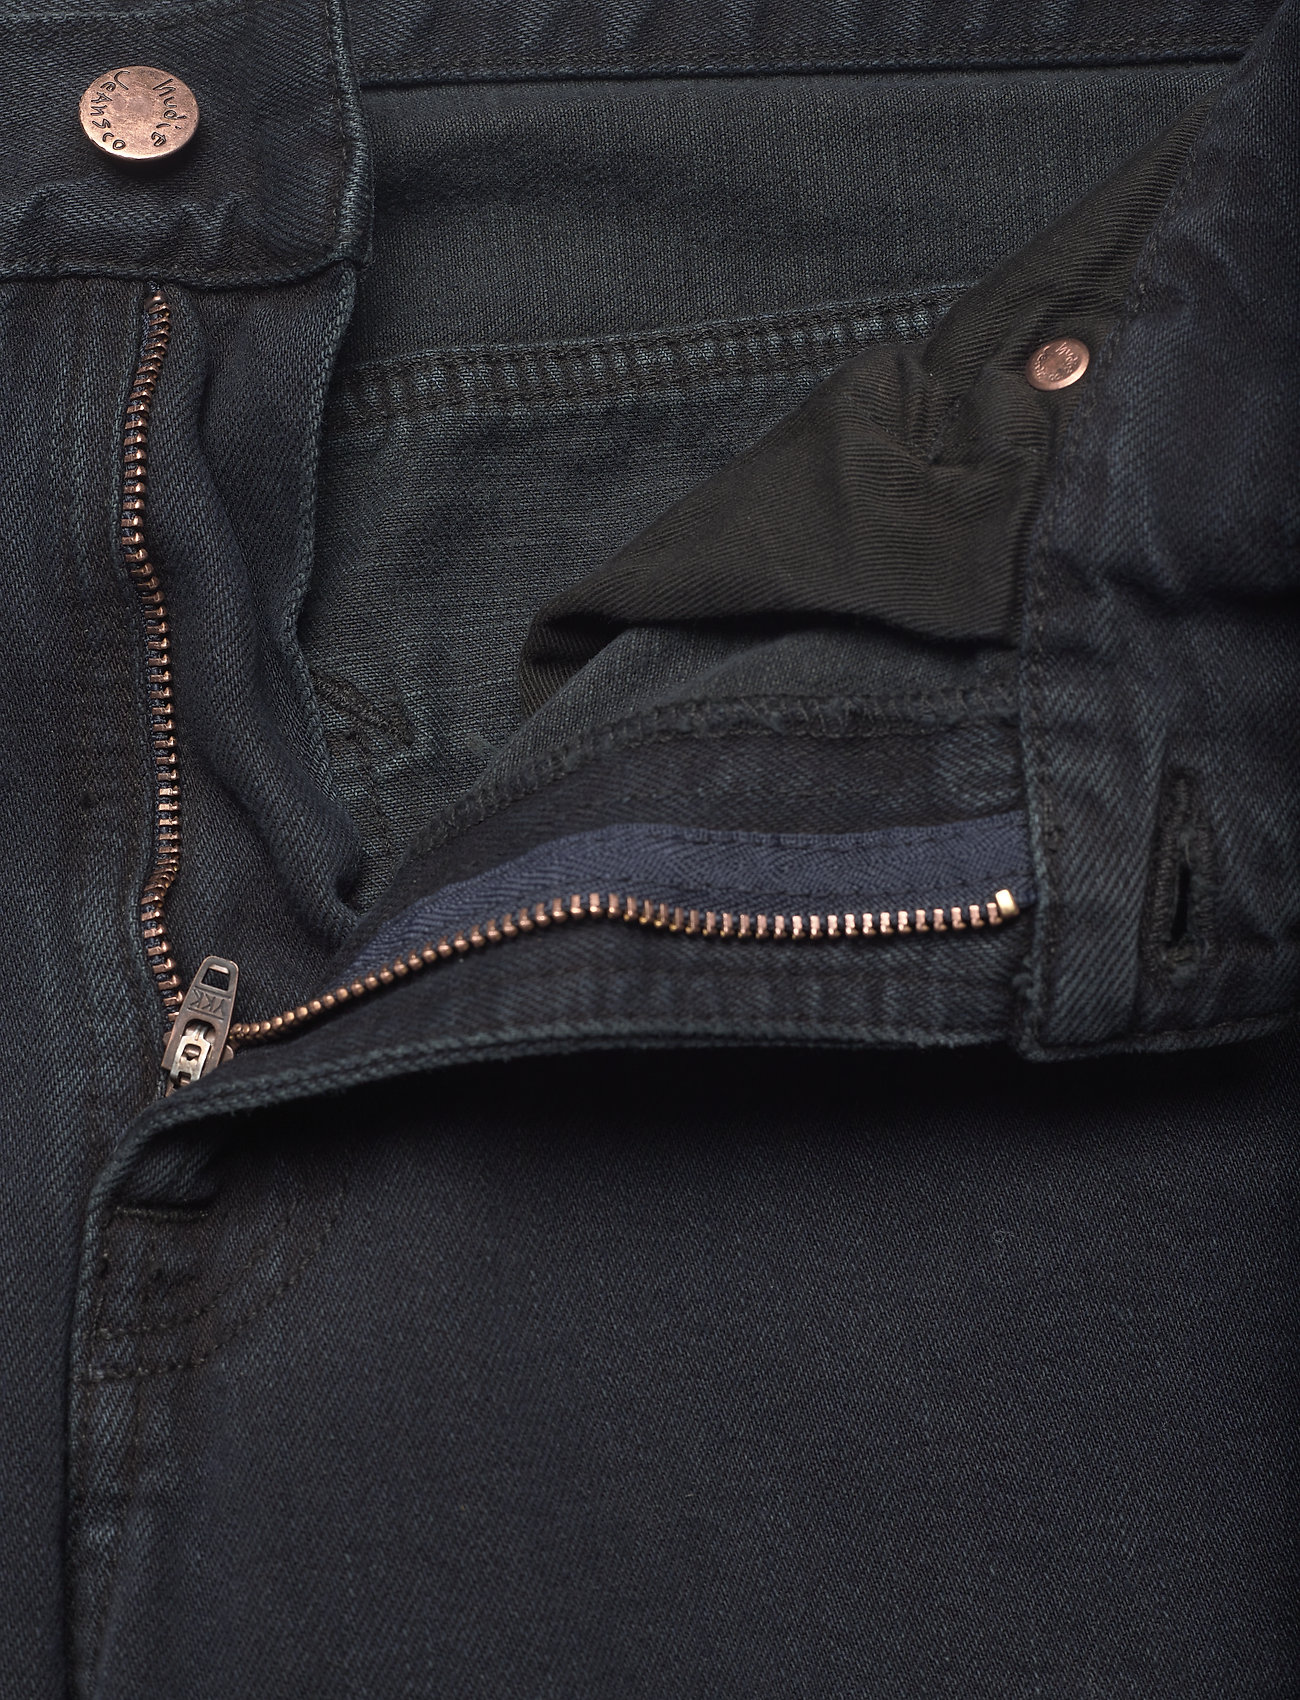 Nudie Jeans - Gritty Jackson - regular jeans - black forest - 3